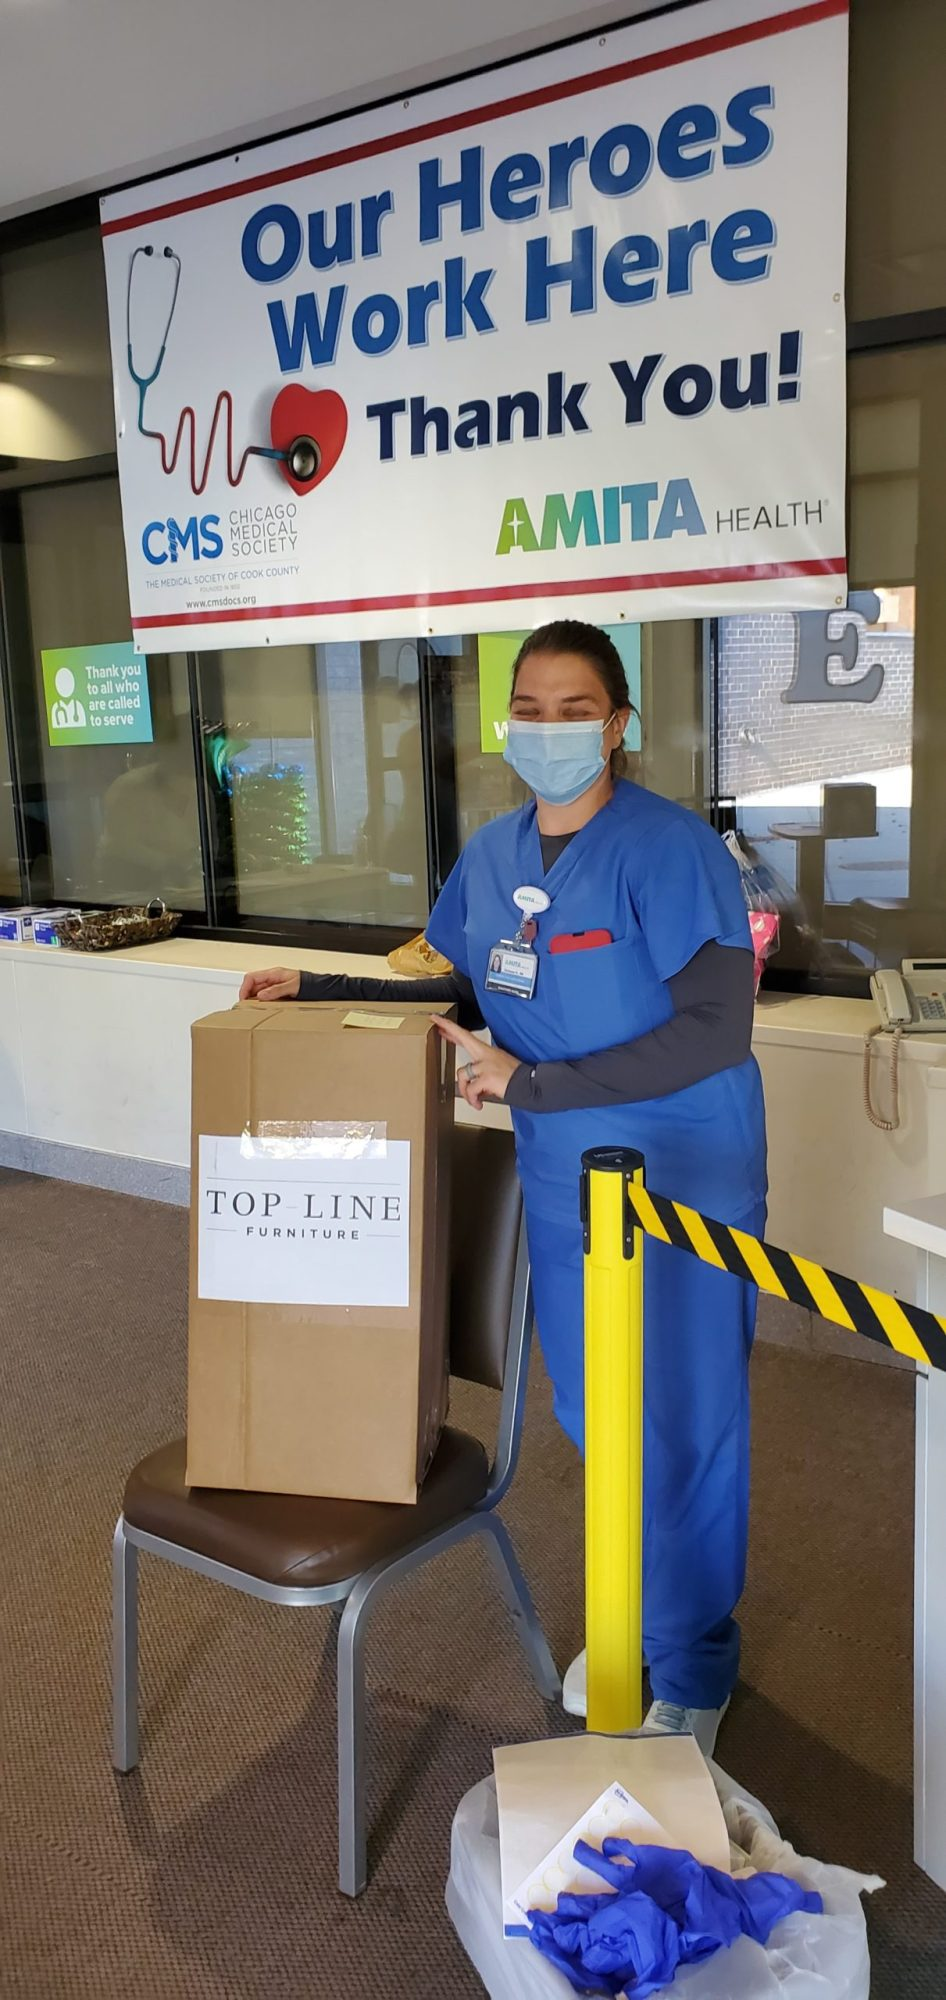 A healthcare worker from AMITA Health with a packaged face shield donation from Inspire Q.